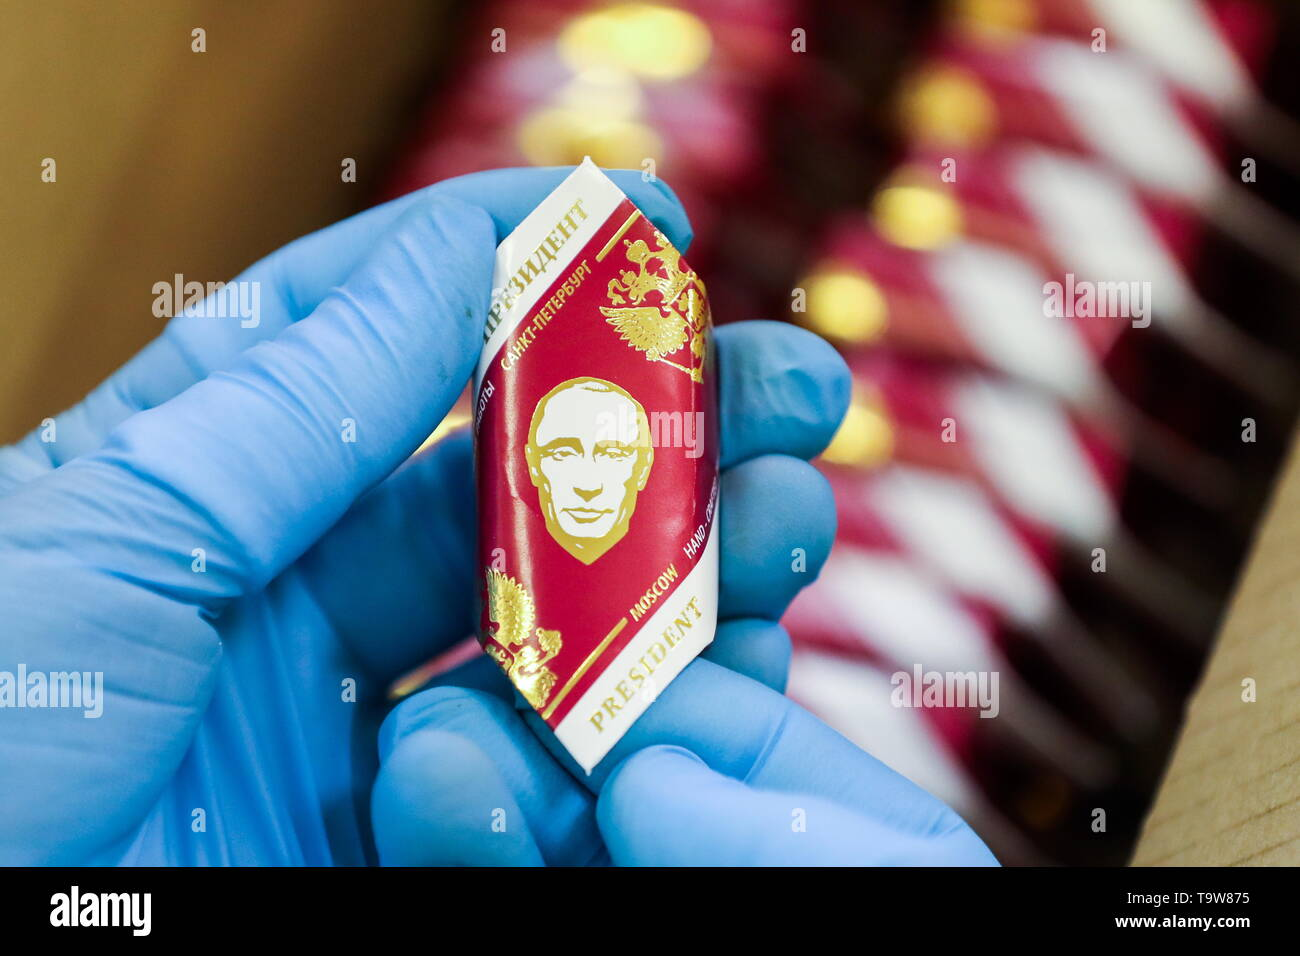 St Petersburg, Russia. 20th May, 2019. ST PETERSBURG, RUSSIA - MAY 20, 2019: A sweet wrapper bearing an image of Russian President Vladimir Putin produced at the GC - Golden Candies factory. Peter Kovalev/TASS Credit: ITAR-TASS News Agency/Alamy Live News Stock Photo